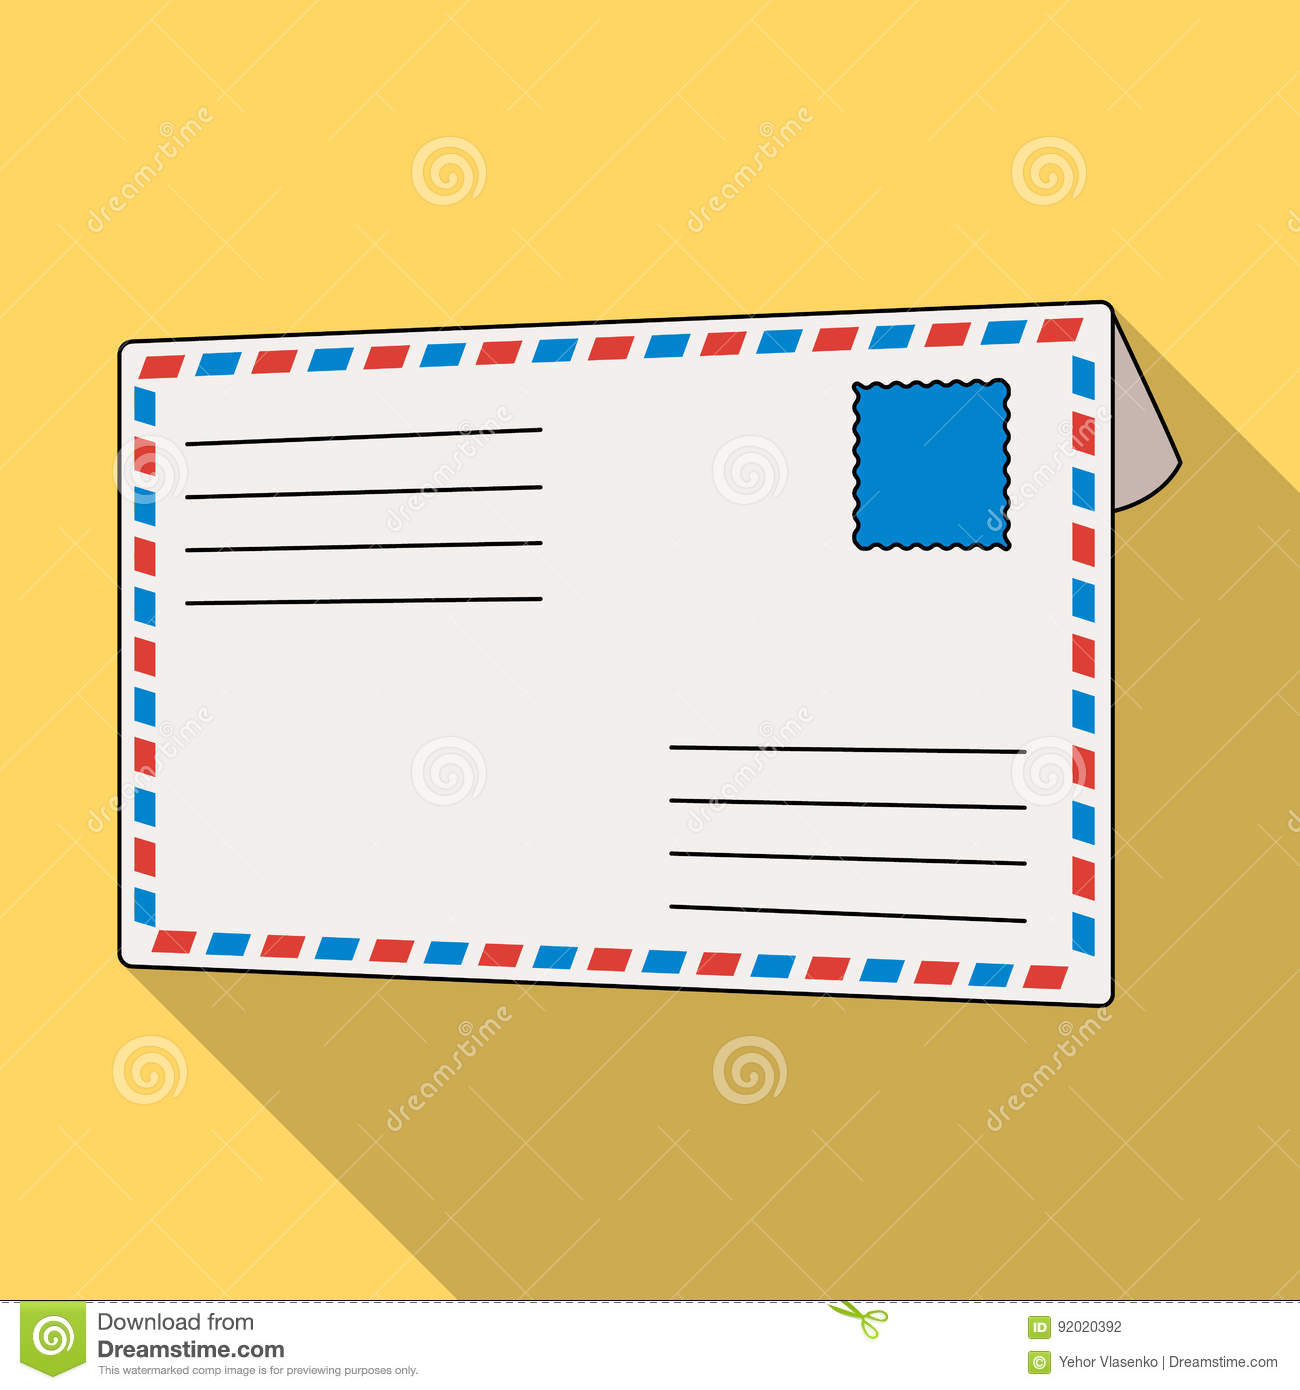 Postal Envelope.Mail And Postman Single Icon In Flat Style